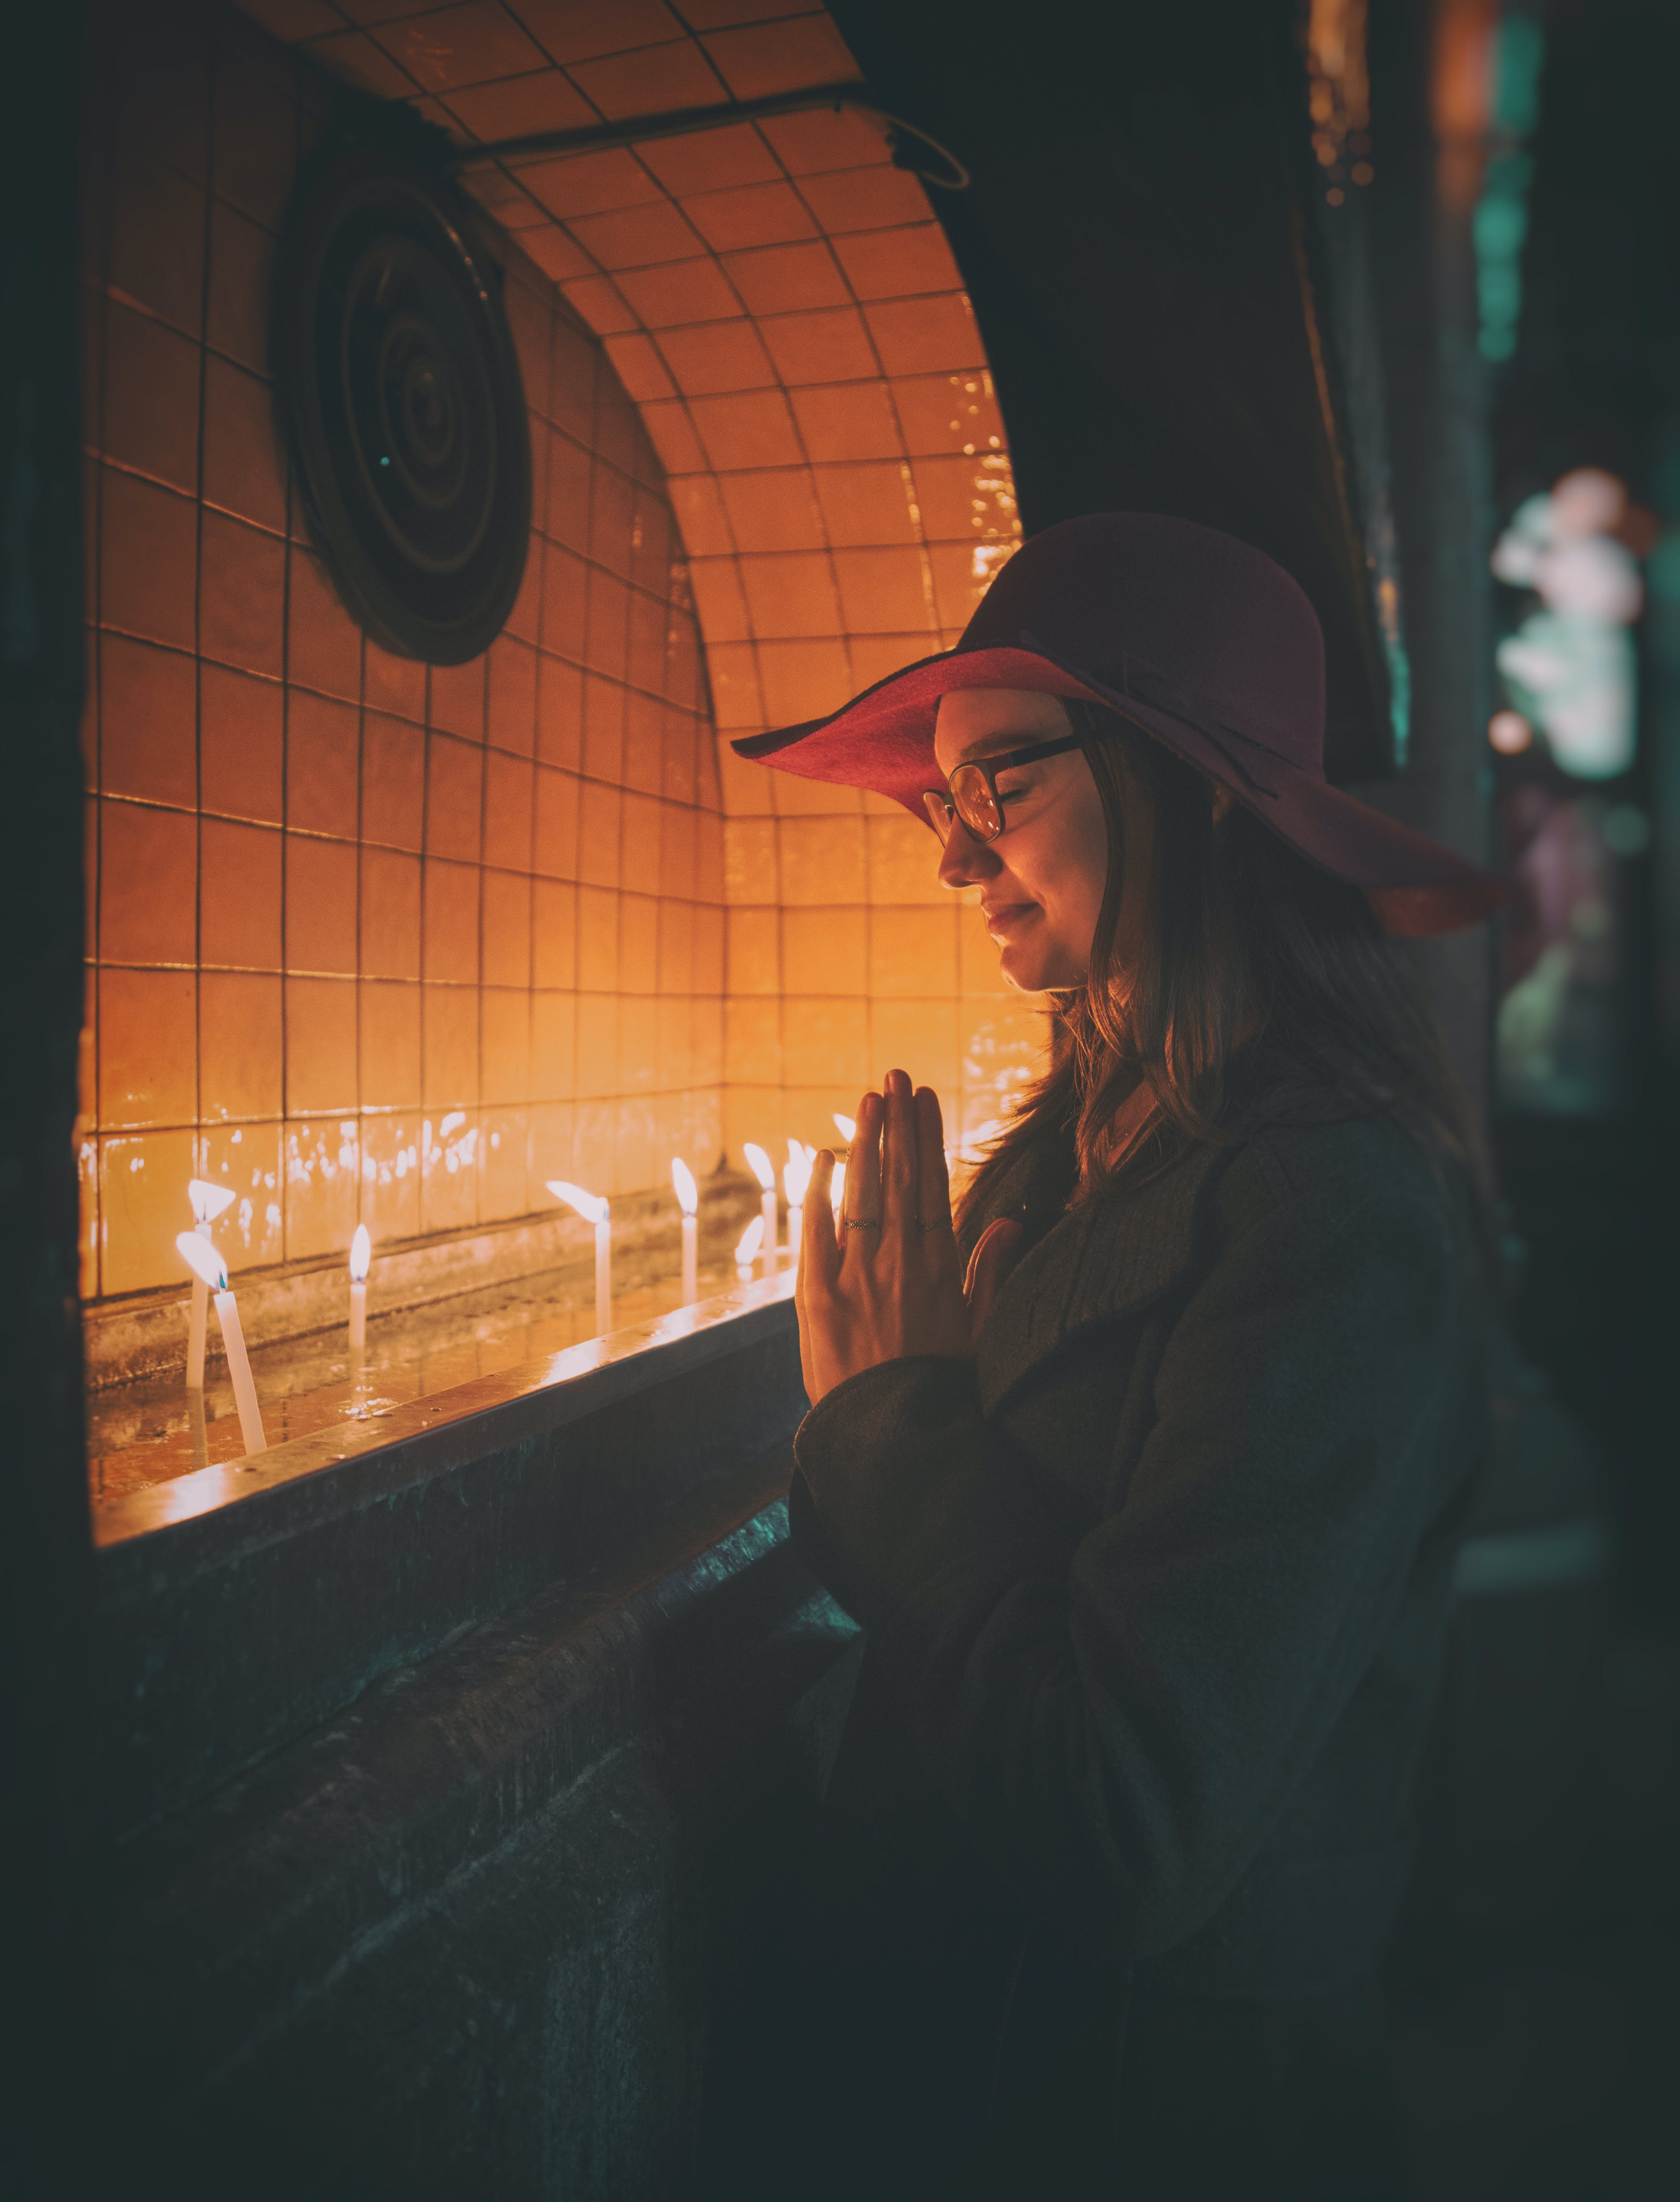 Woman Praying In Front of Lit Candles